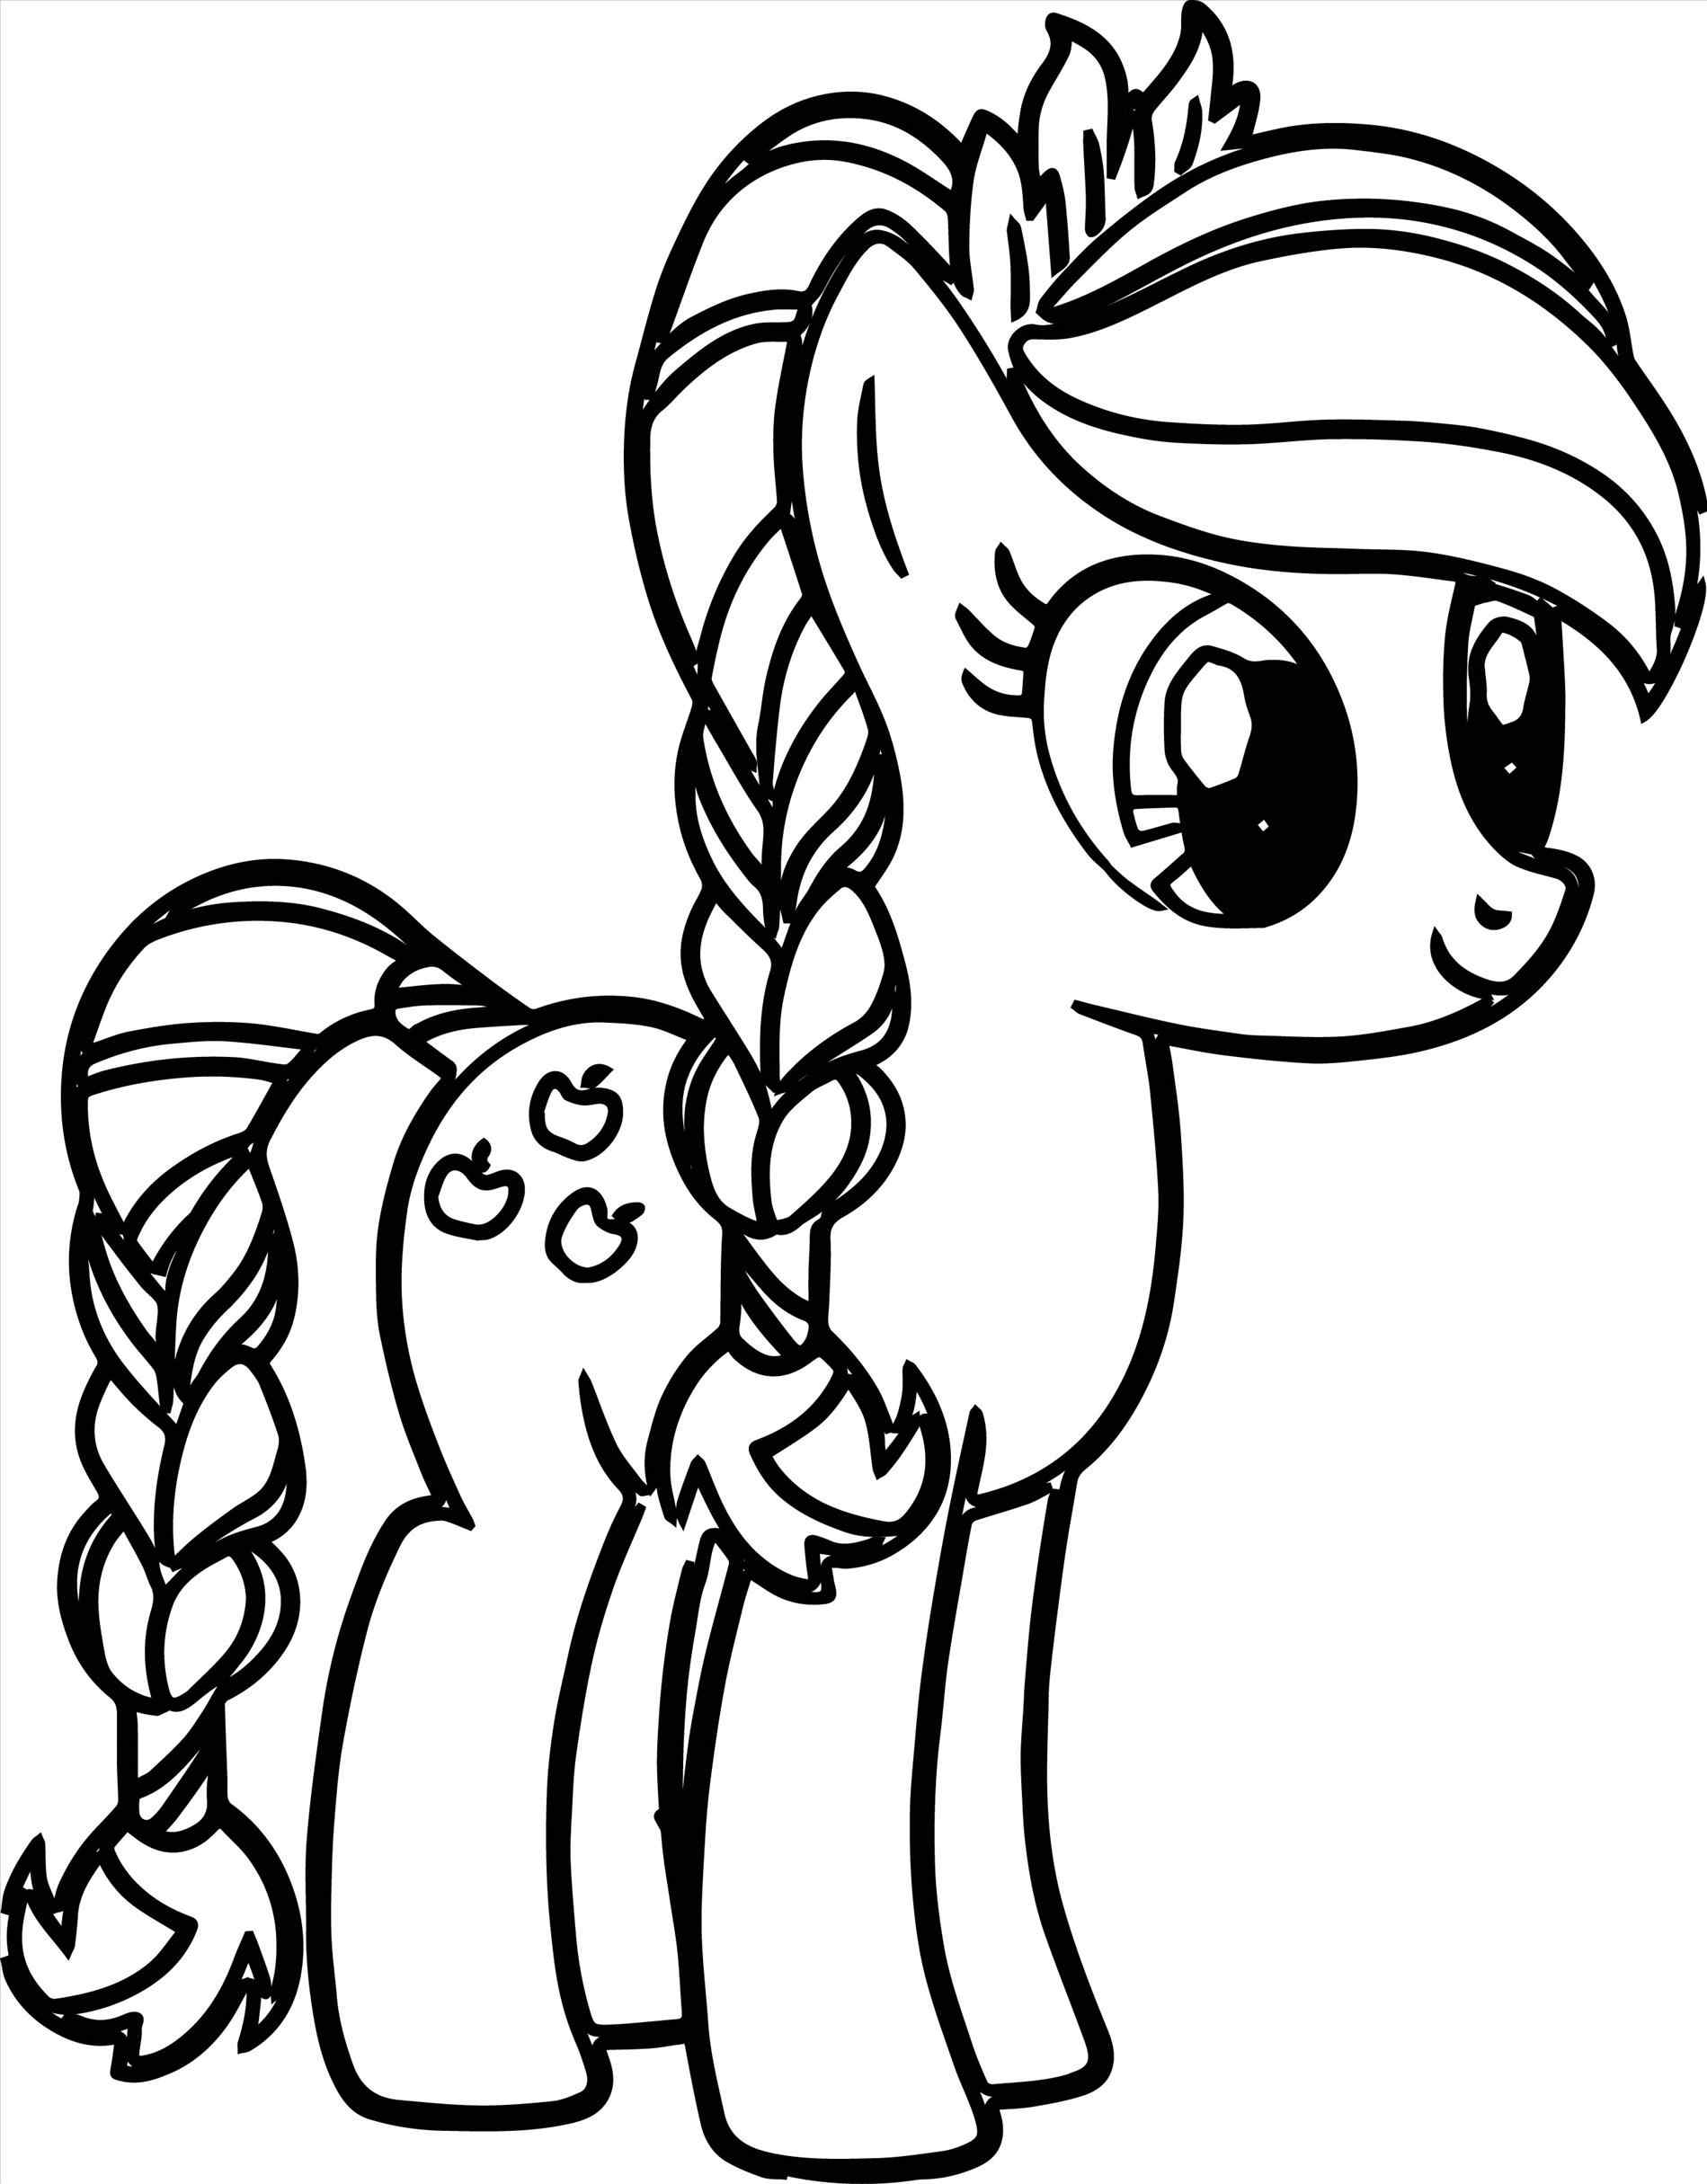 1899x2430 Modest My Little Pony Cutie Mark Crusaders Col